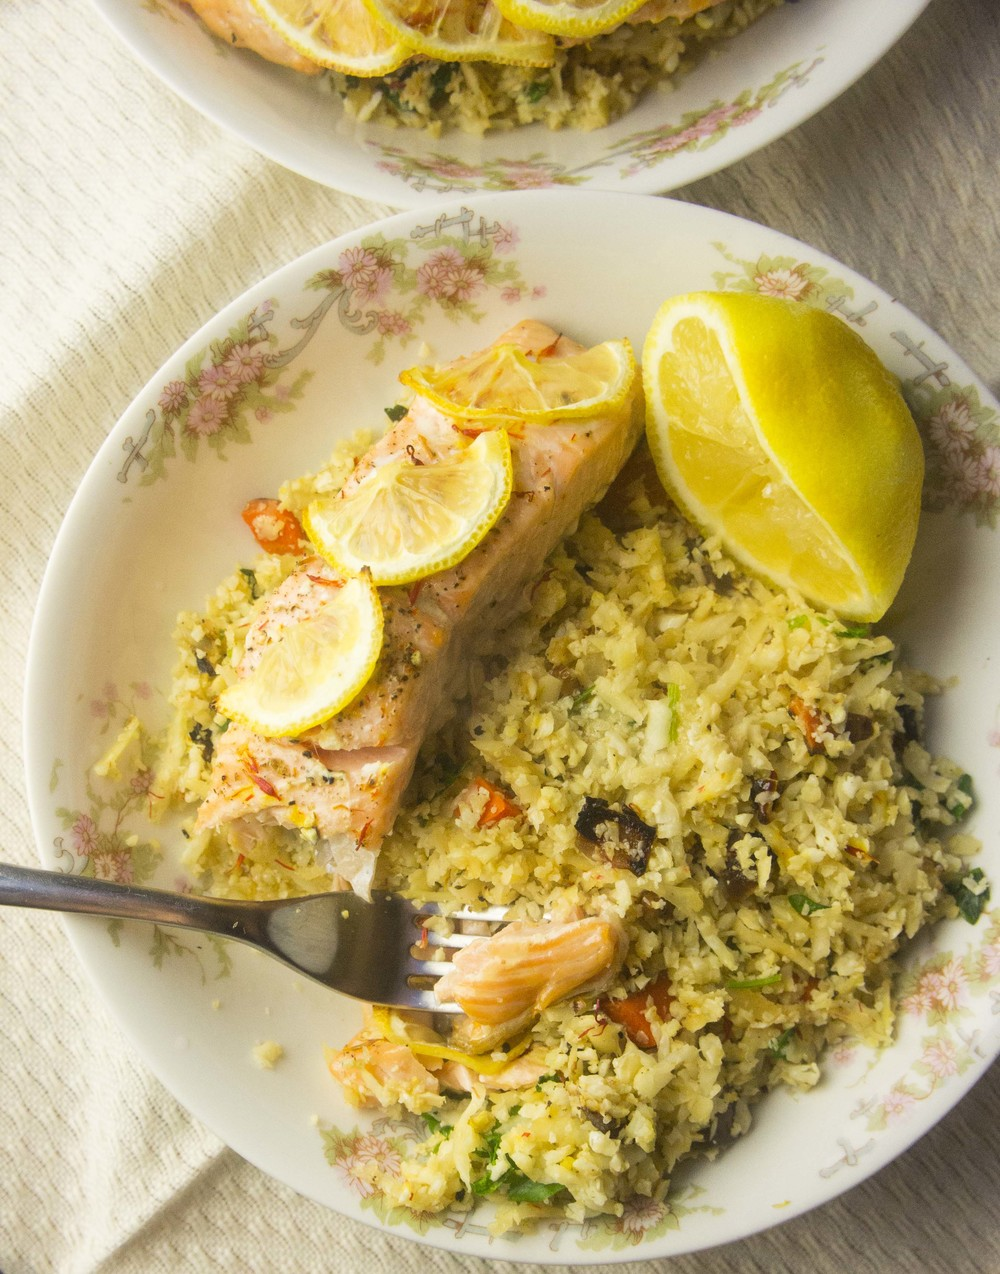 Paleo Baked Salmon over Grain-Free Apricot Pilaf (AIP-Friendly)